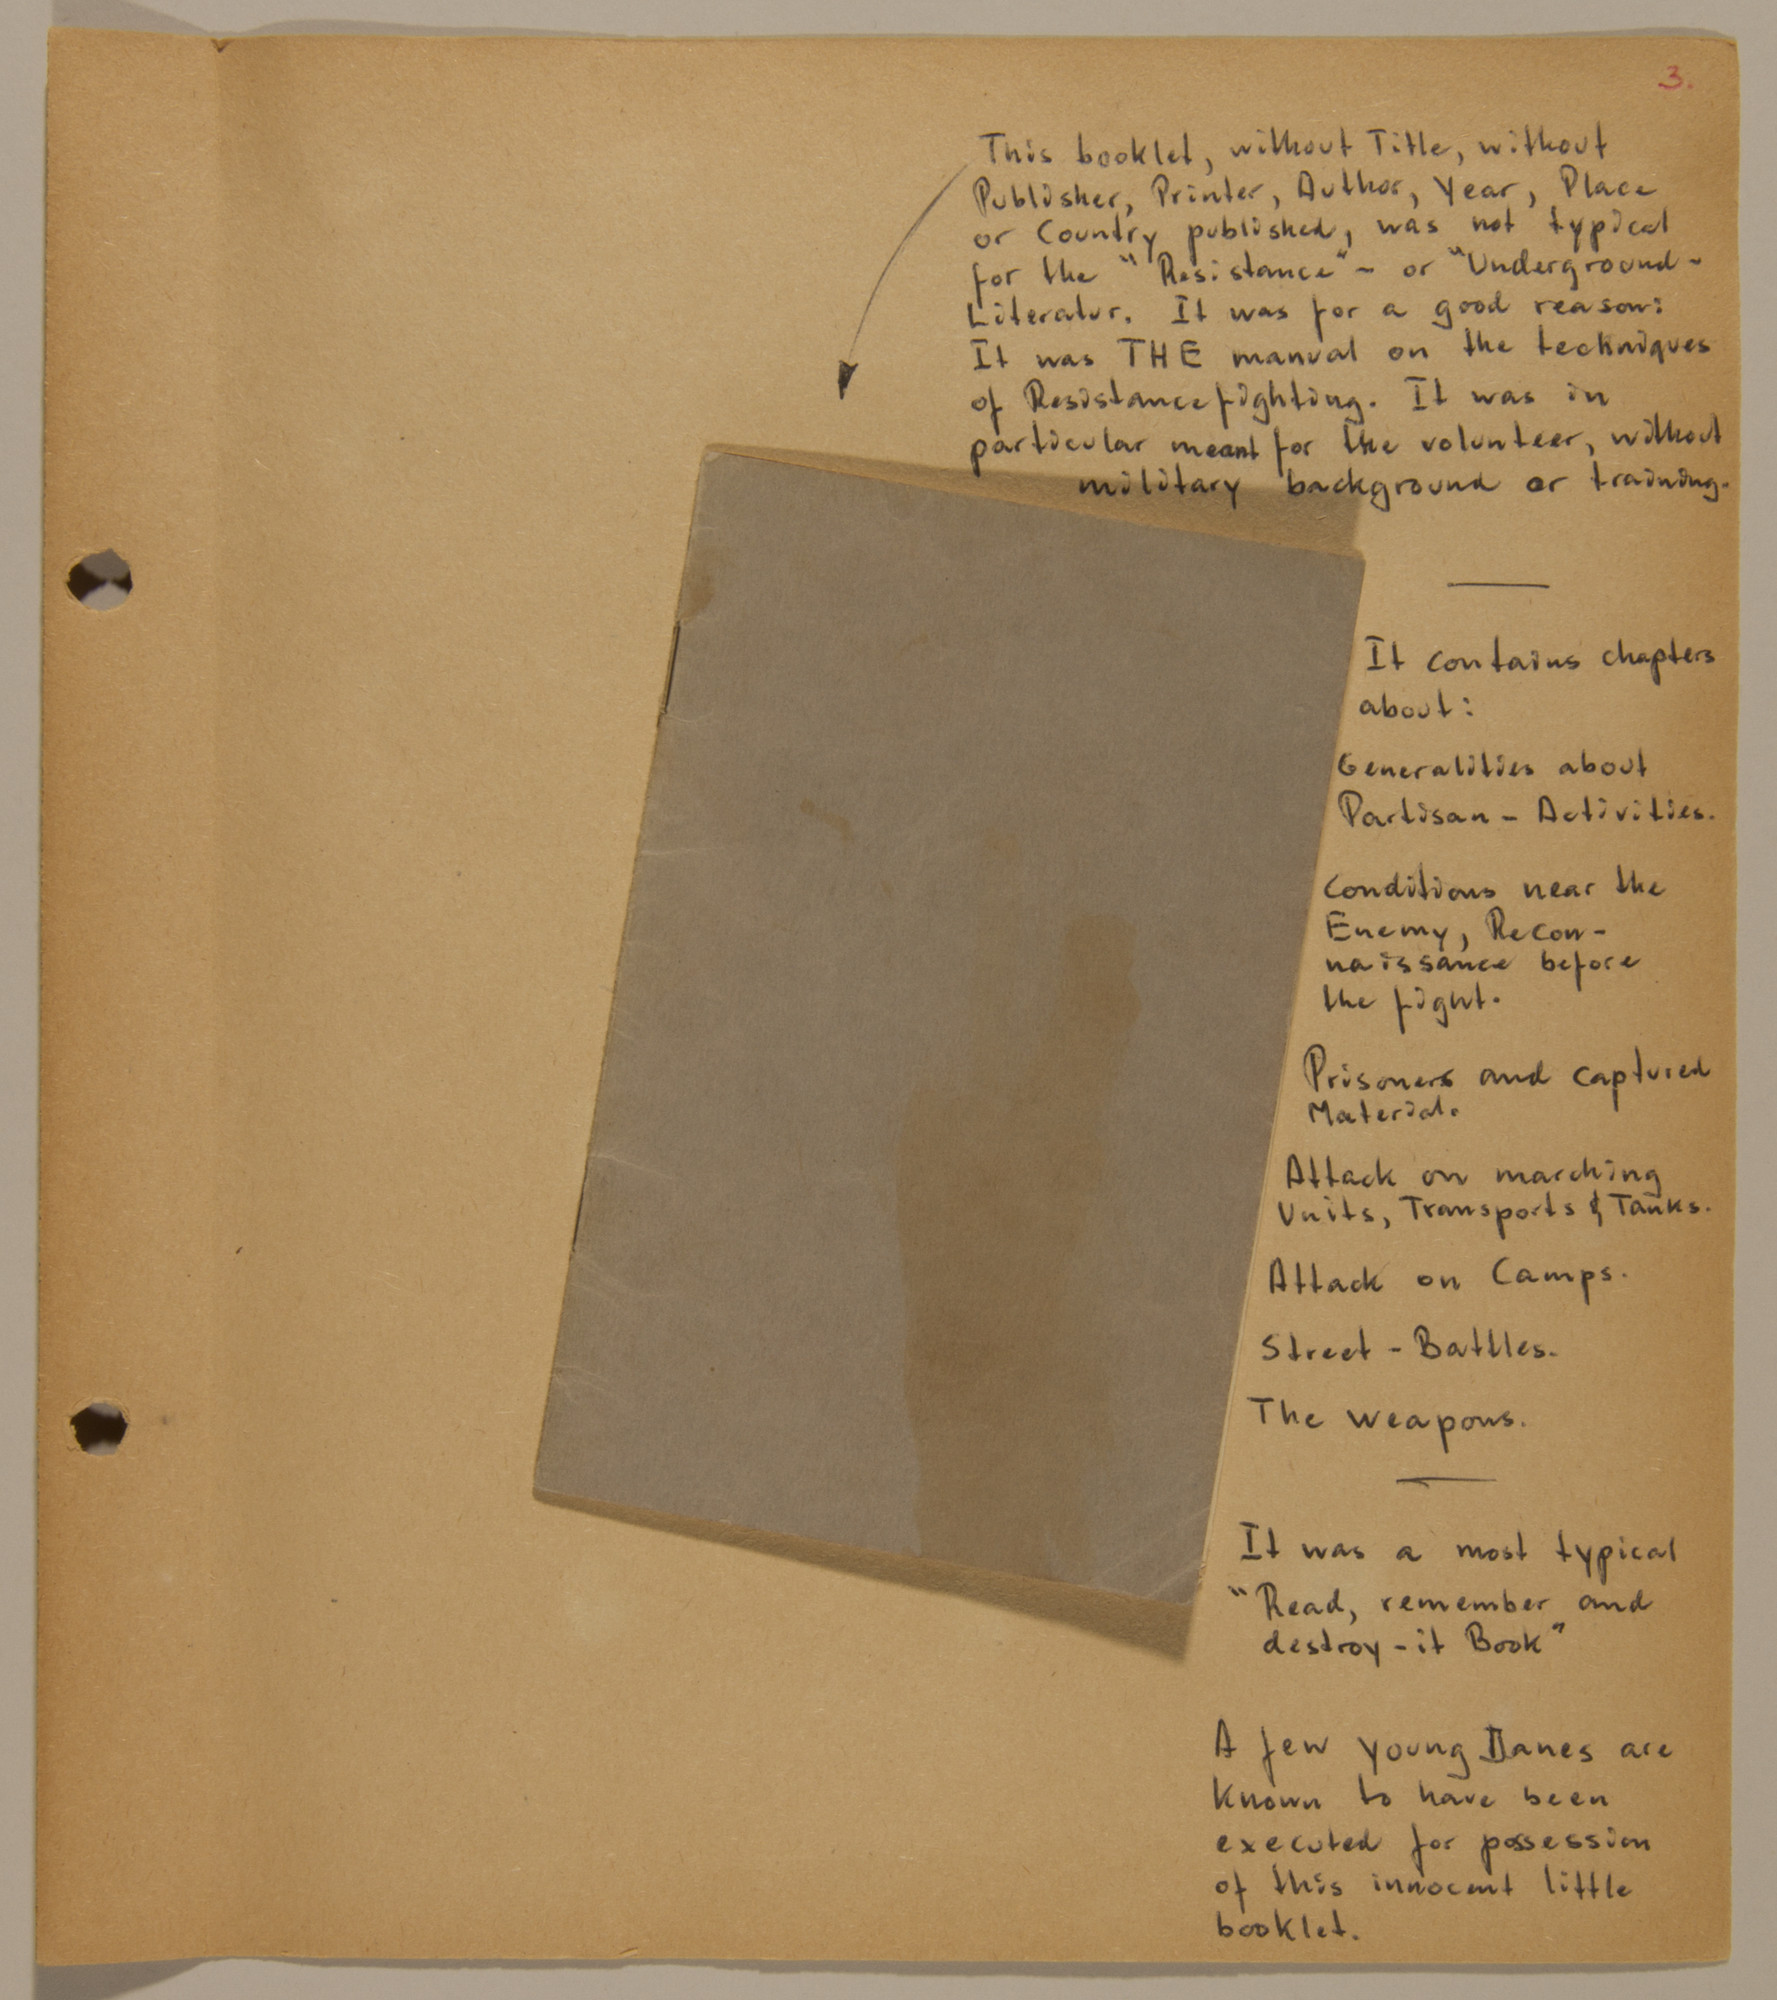 Page from volume five of a set of scrapbooks compiled by Bjorn Sibbern, a Danish policeman and resistance member, documenting the German occupation of Denmark.  This page contains the resistance fighting manual published without any identifying marks on the cover.